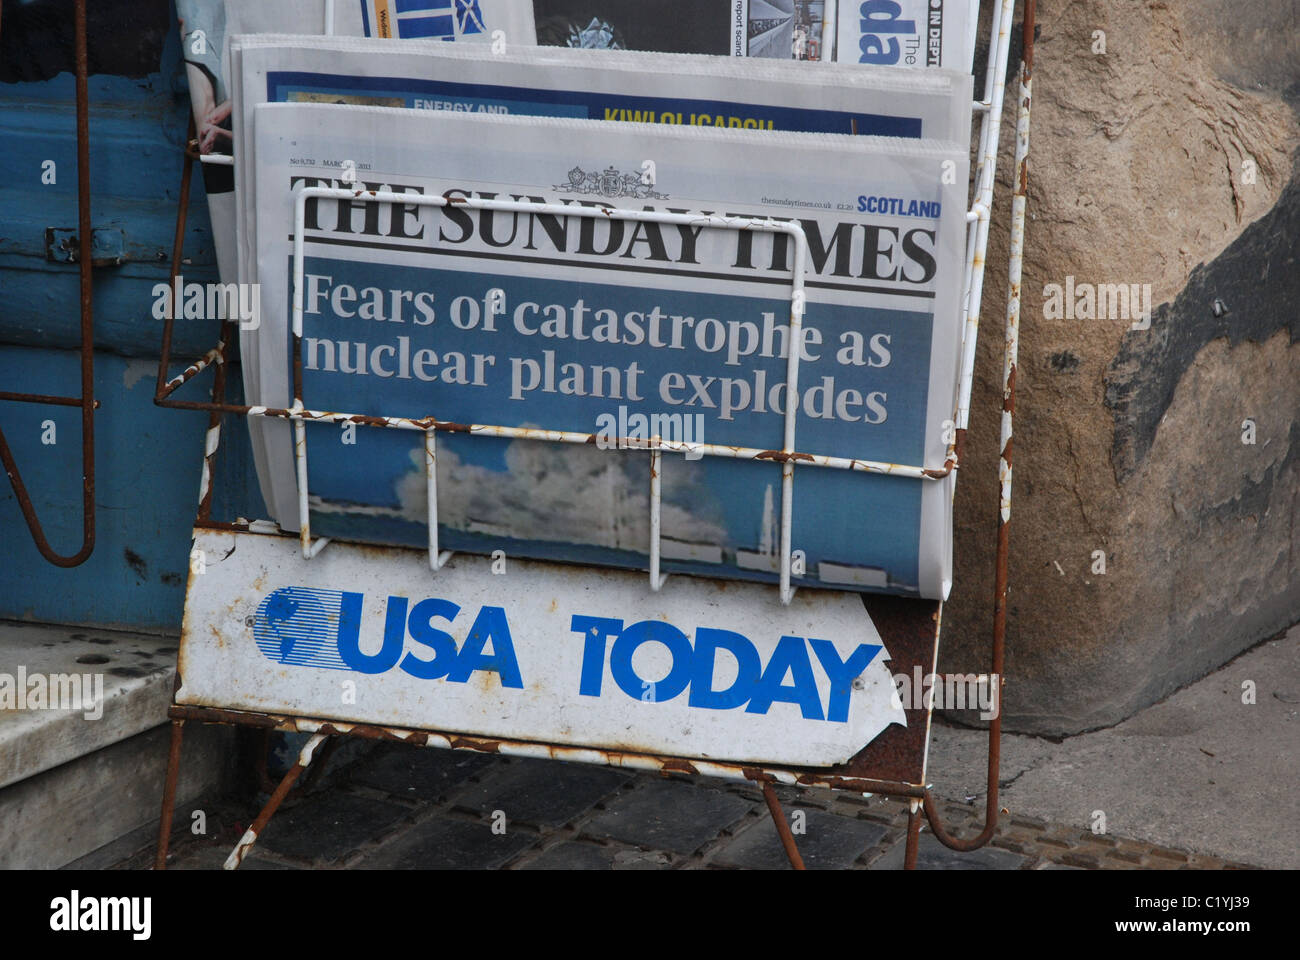 USA Today newspaper stand with a copy of the Sunday Times outside a newsagents in Edinburgh, Scotland, UK. - Stock Image